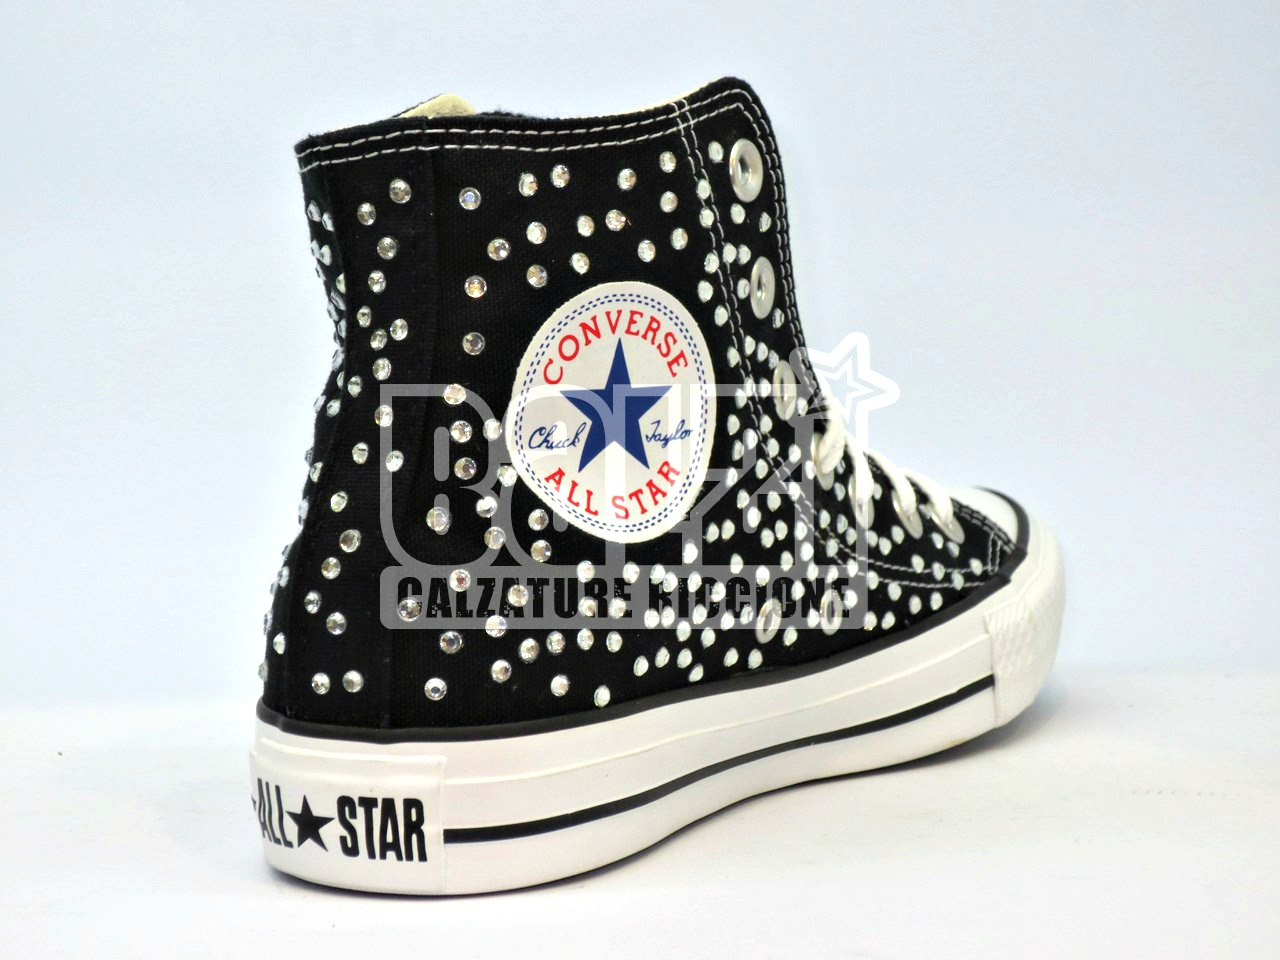 4e312334cc1be Acquista all star nere pelle donna - OFF74% sconti